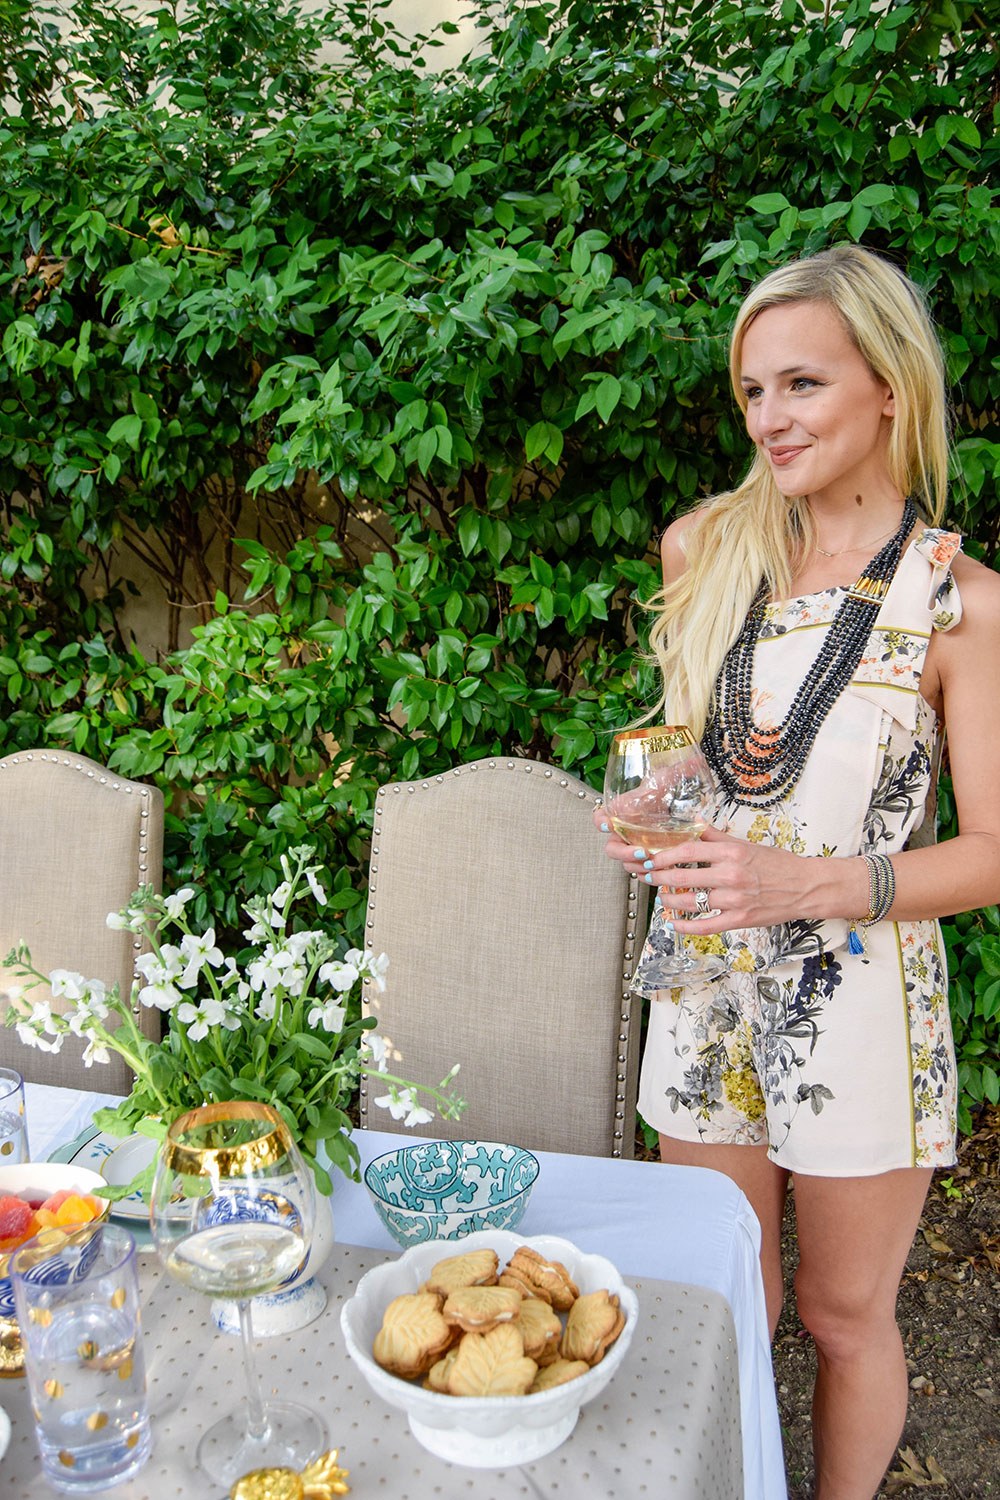 vandi-fair-blog-lauren-vandiver-dallas-texas-southern-fashion-lifestyle-blogger-noonday-collection-jewelry-hosting-a-sweet-weekend-gathering-hostess-outdoor-backyard-party